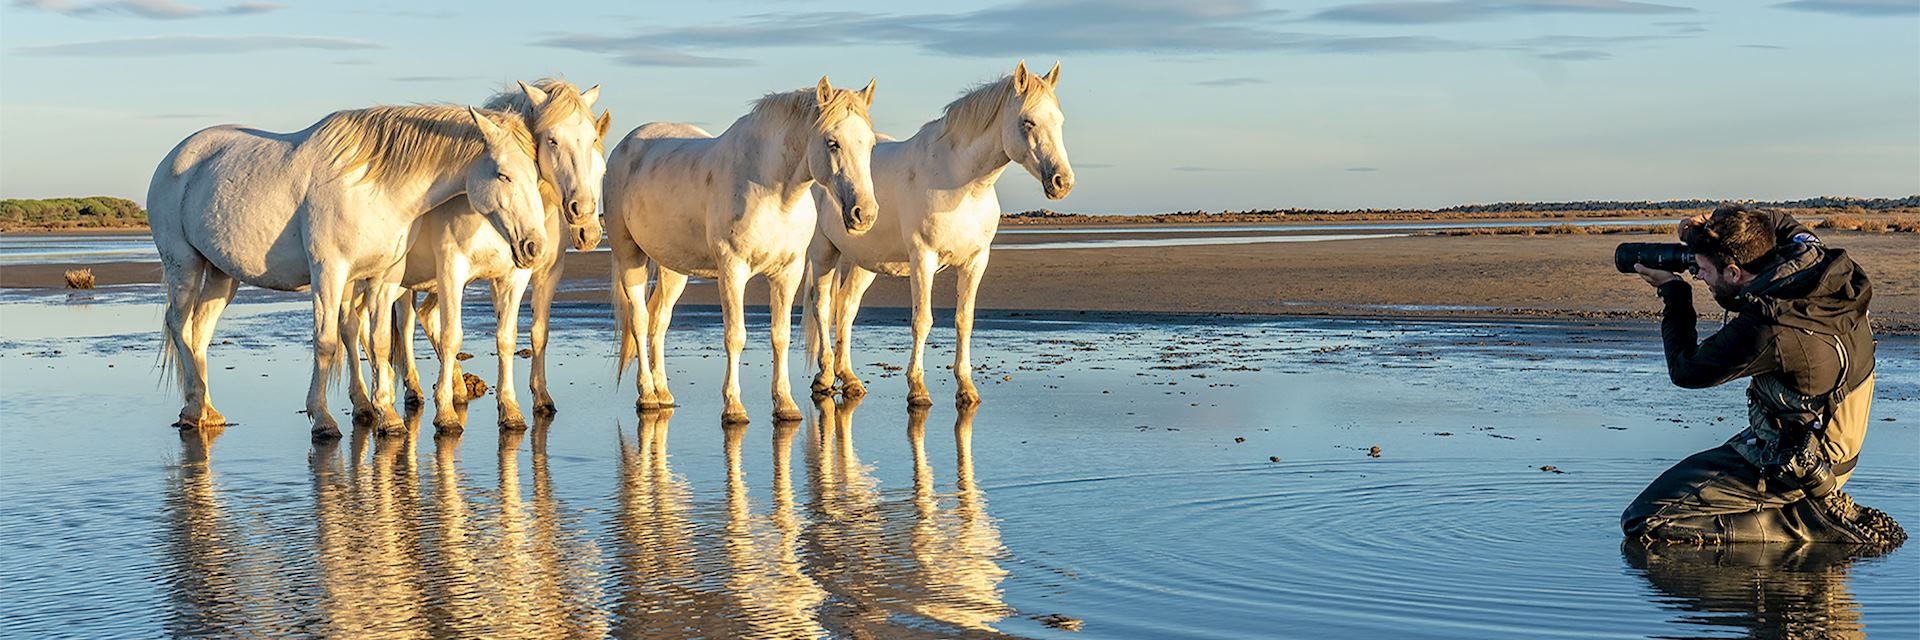 Horses in the Camargue, France - © Harry Skeggs